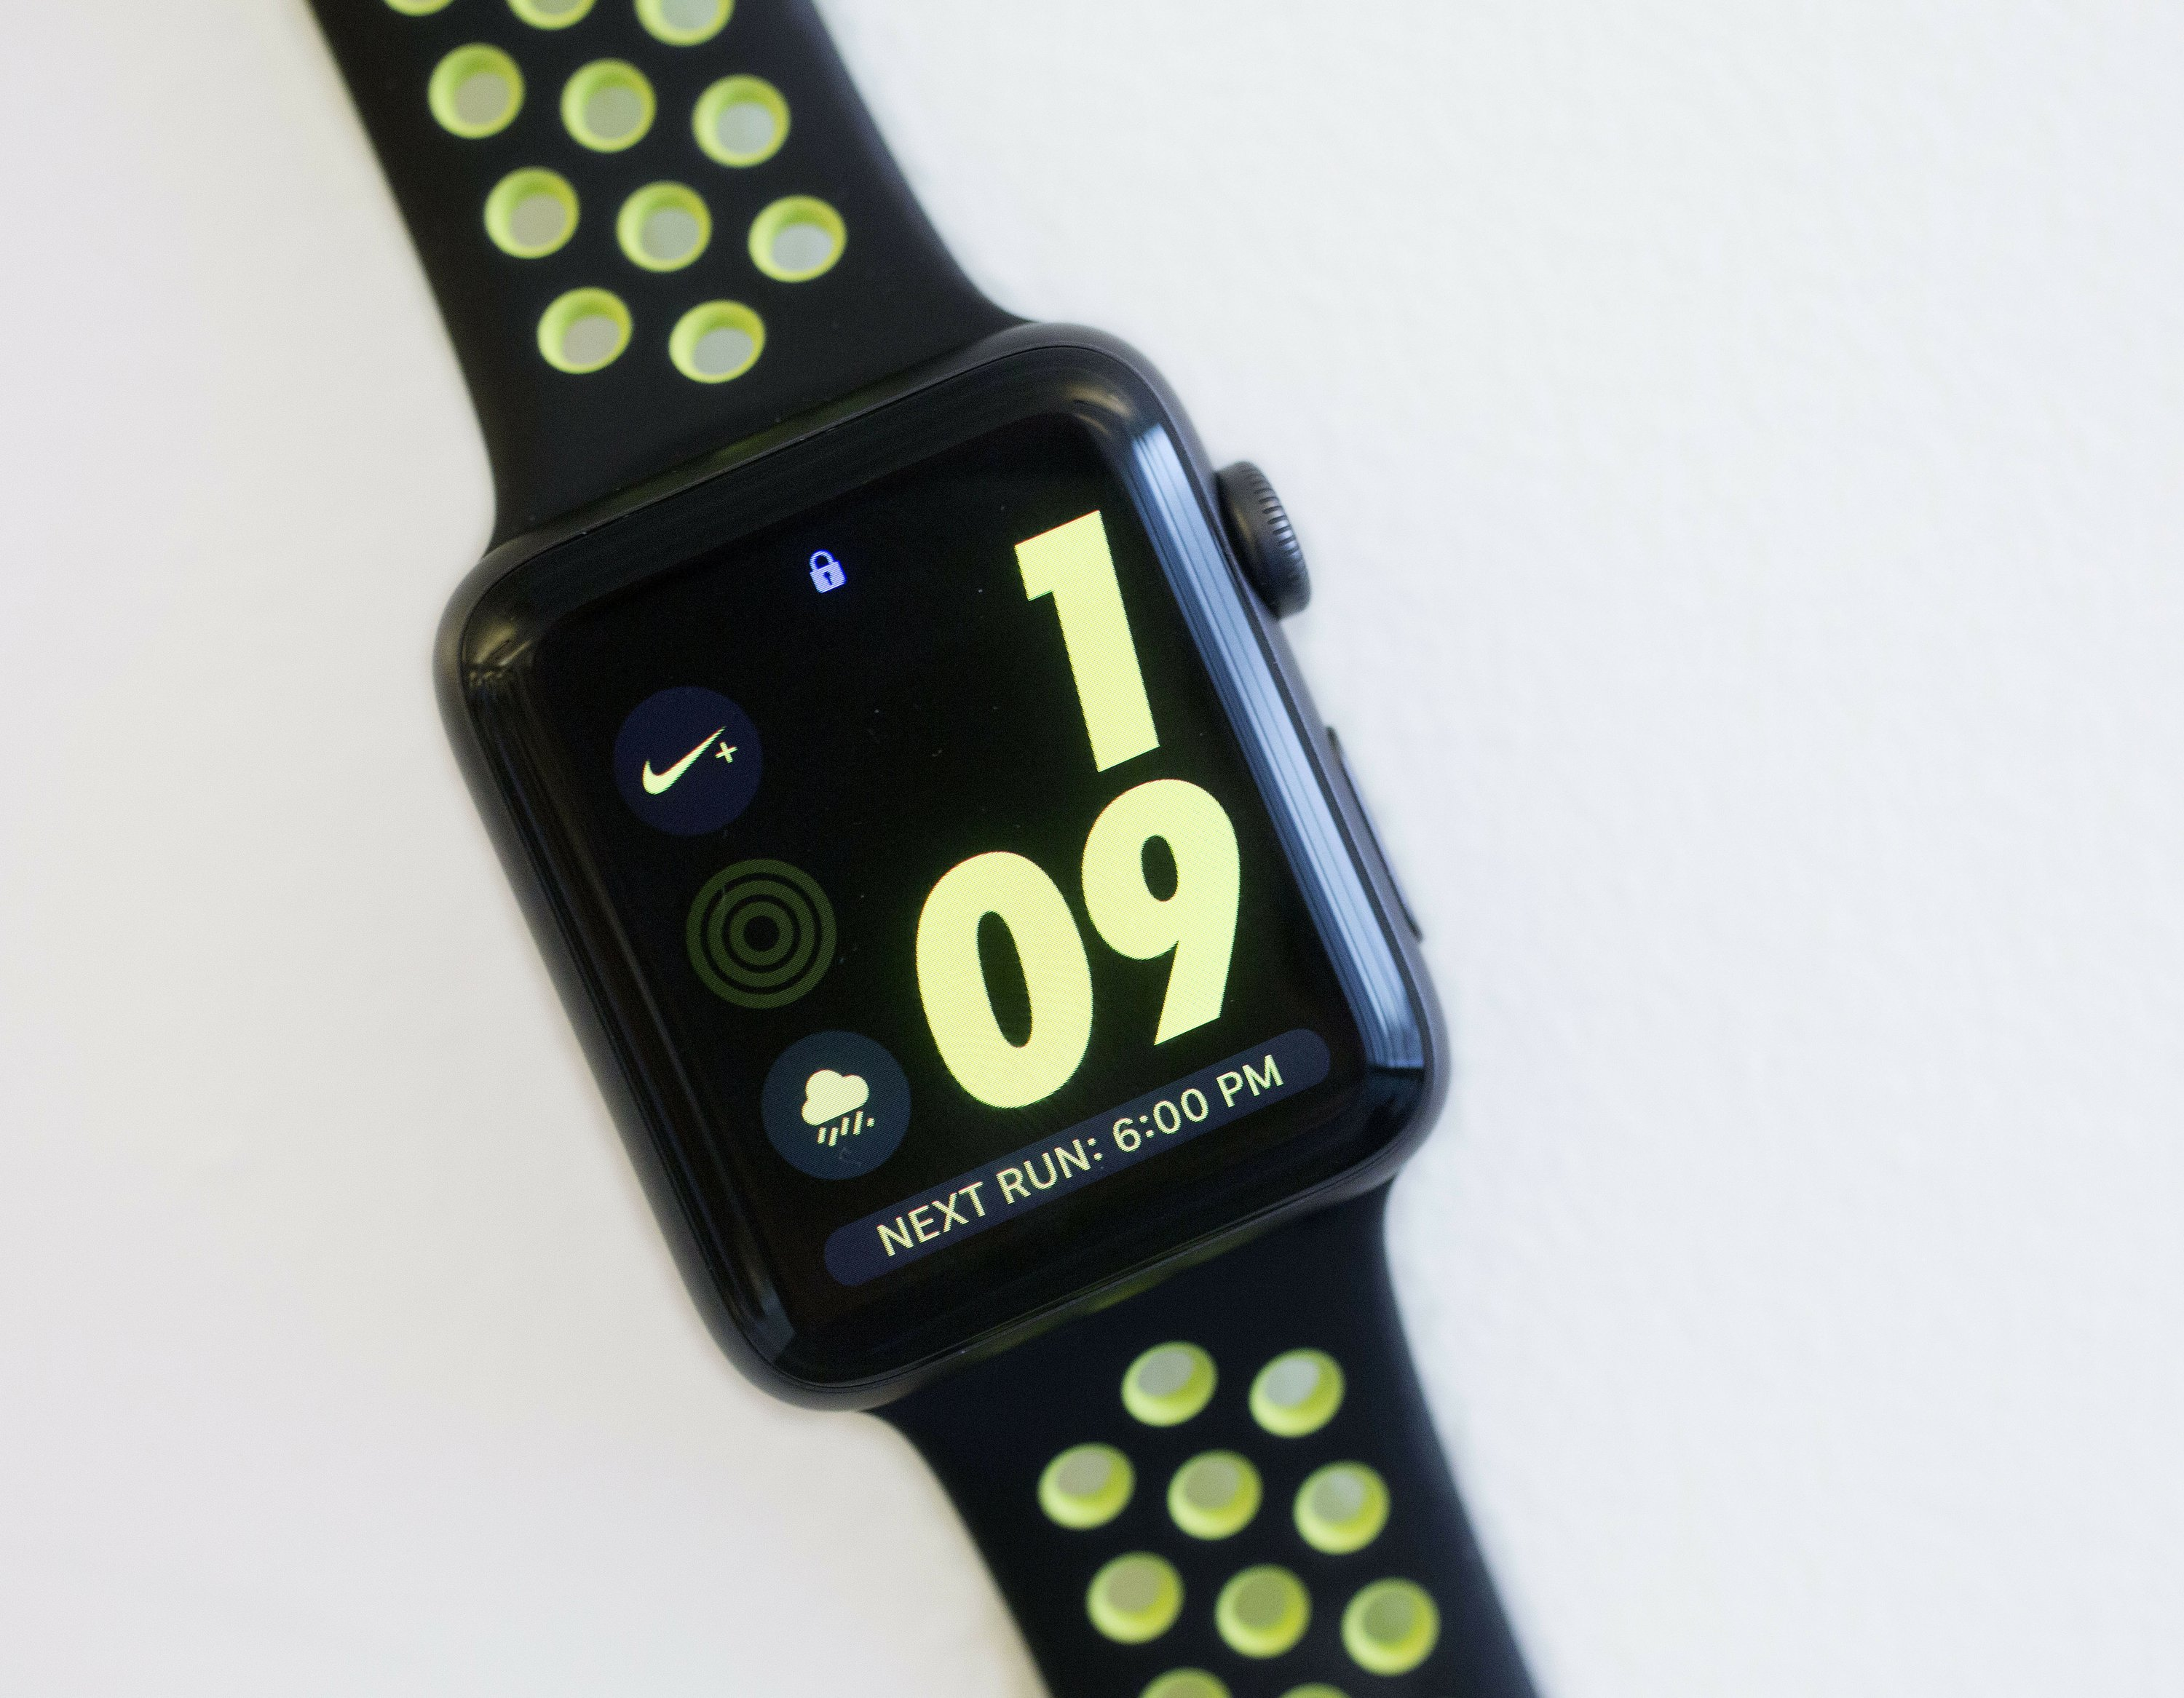 Apple double downs on running with Nike-edition smartwatch